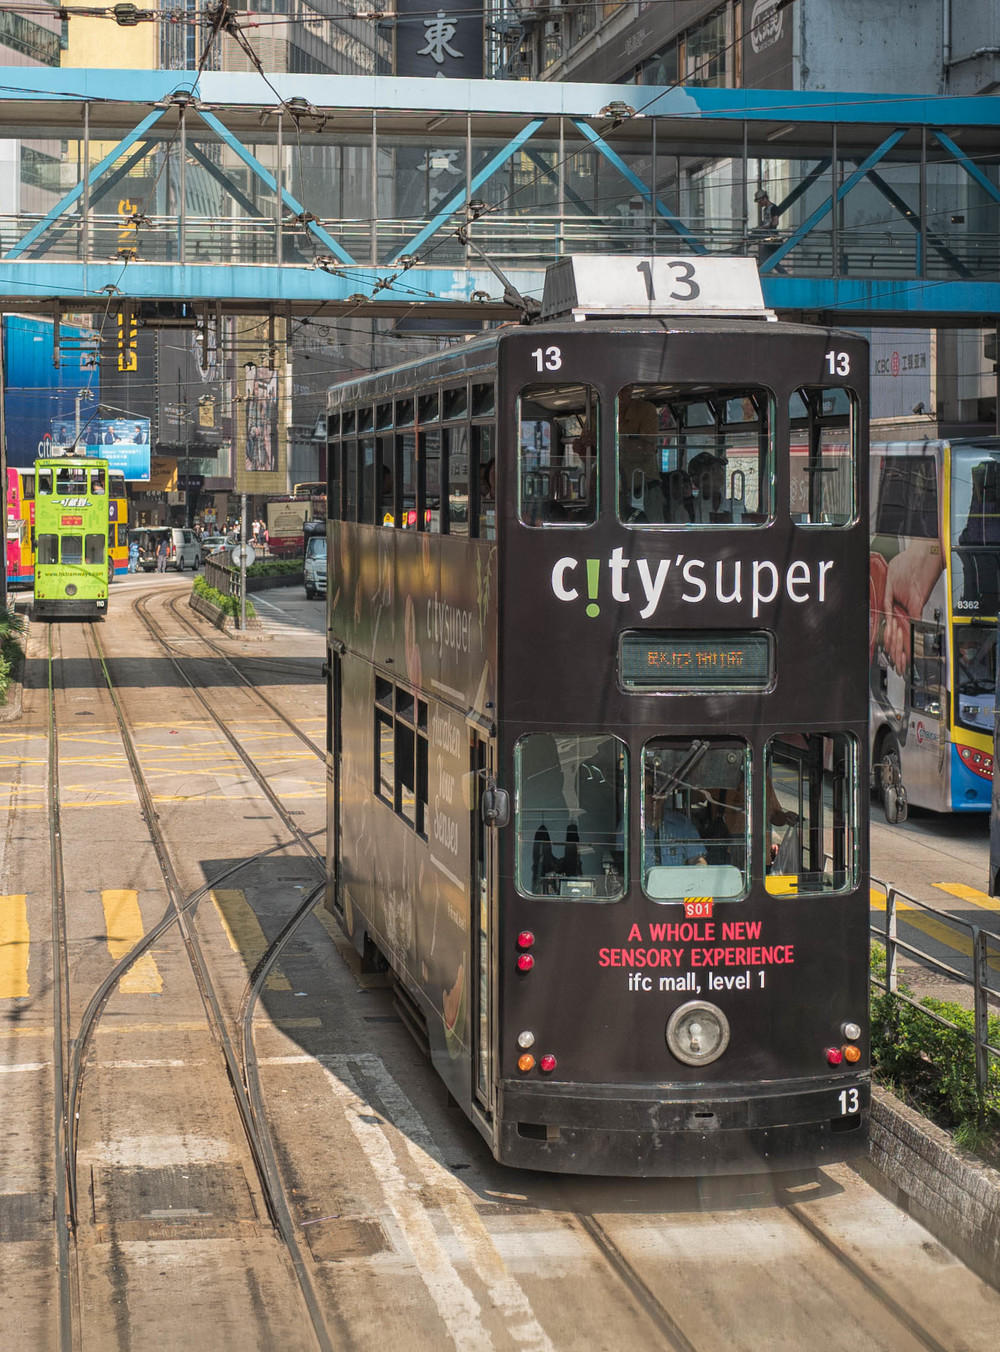 Hong Kong's dinky little tram system is now under threat from city planners, may they be thwarted in their plans